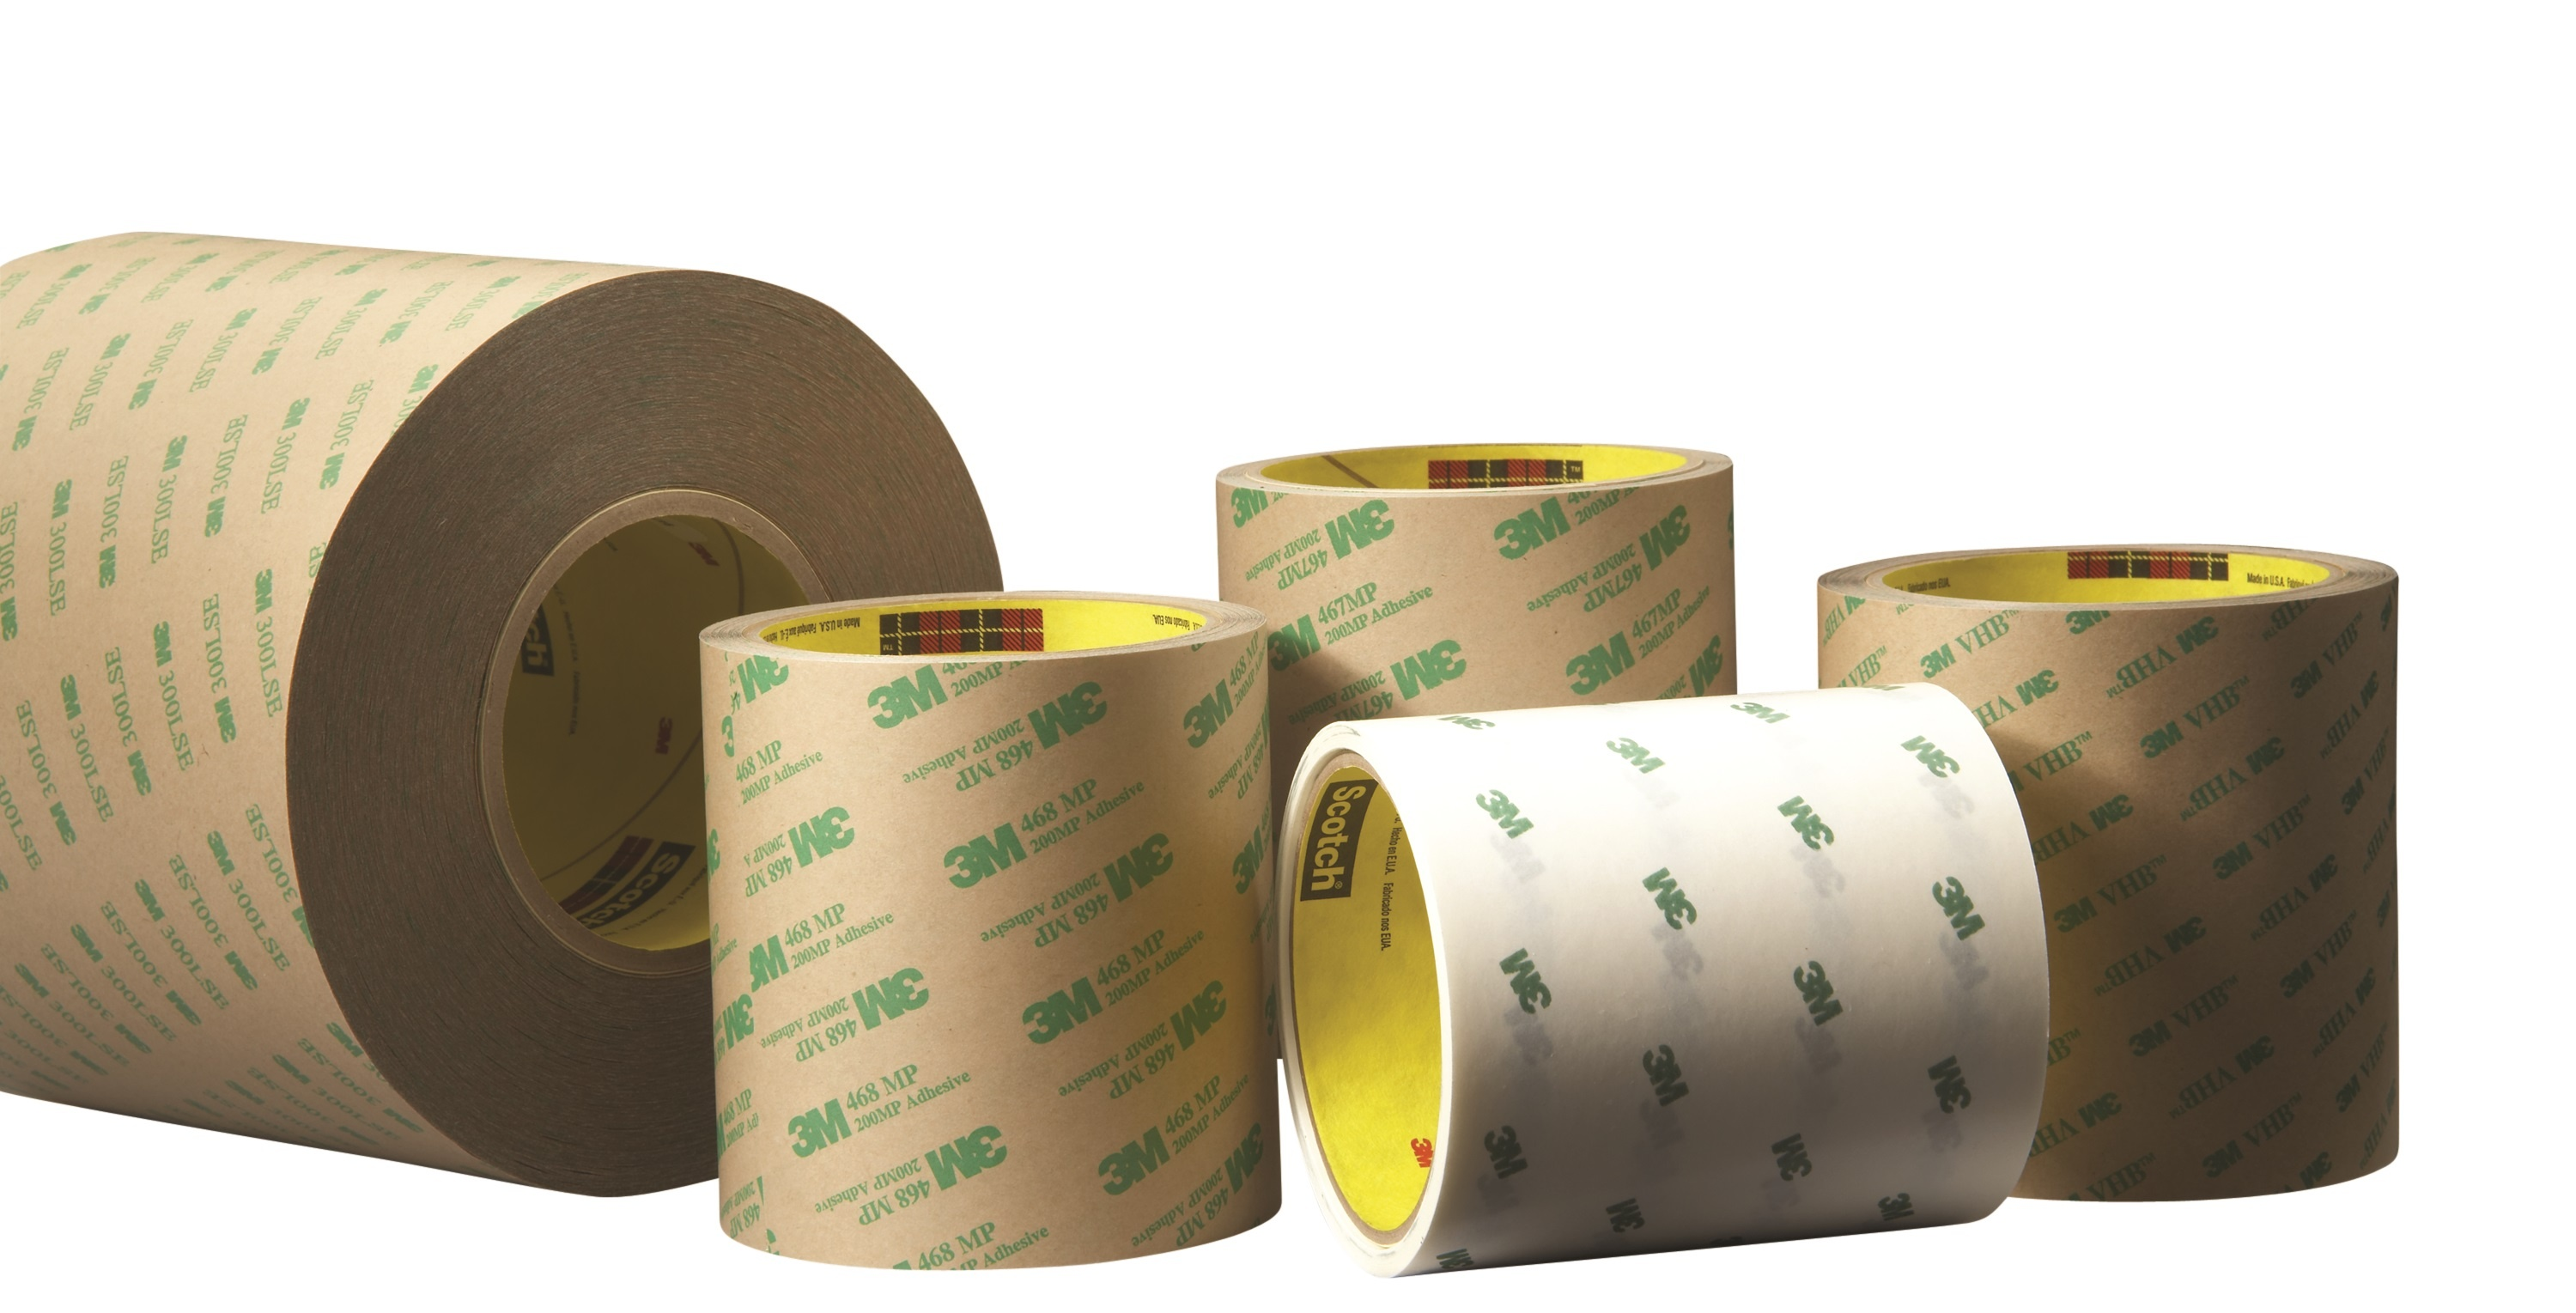 3M-double-coated-tapes-cut-at-Gleicher-468MP.jpg